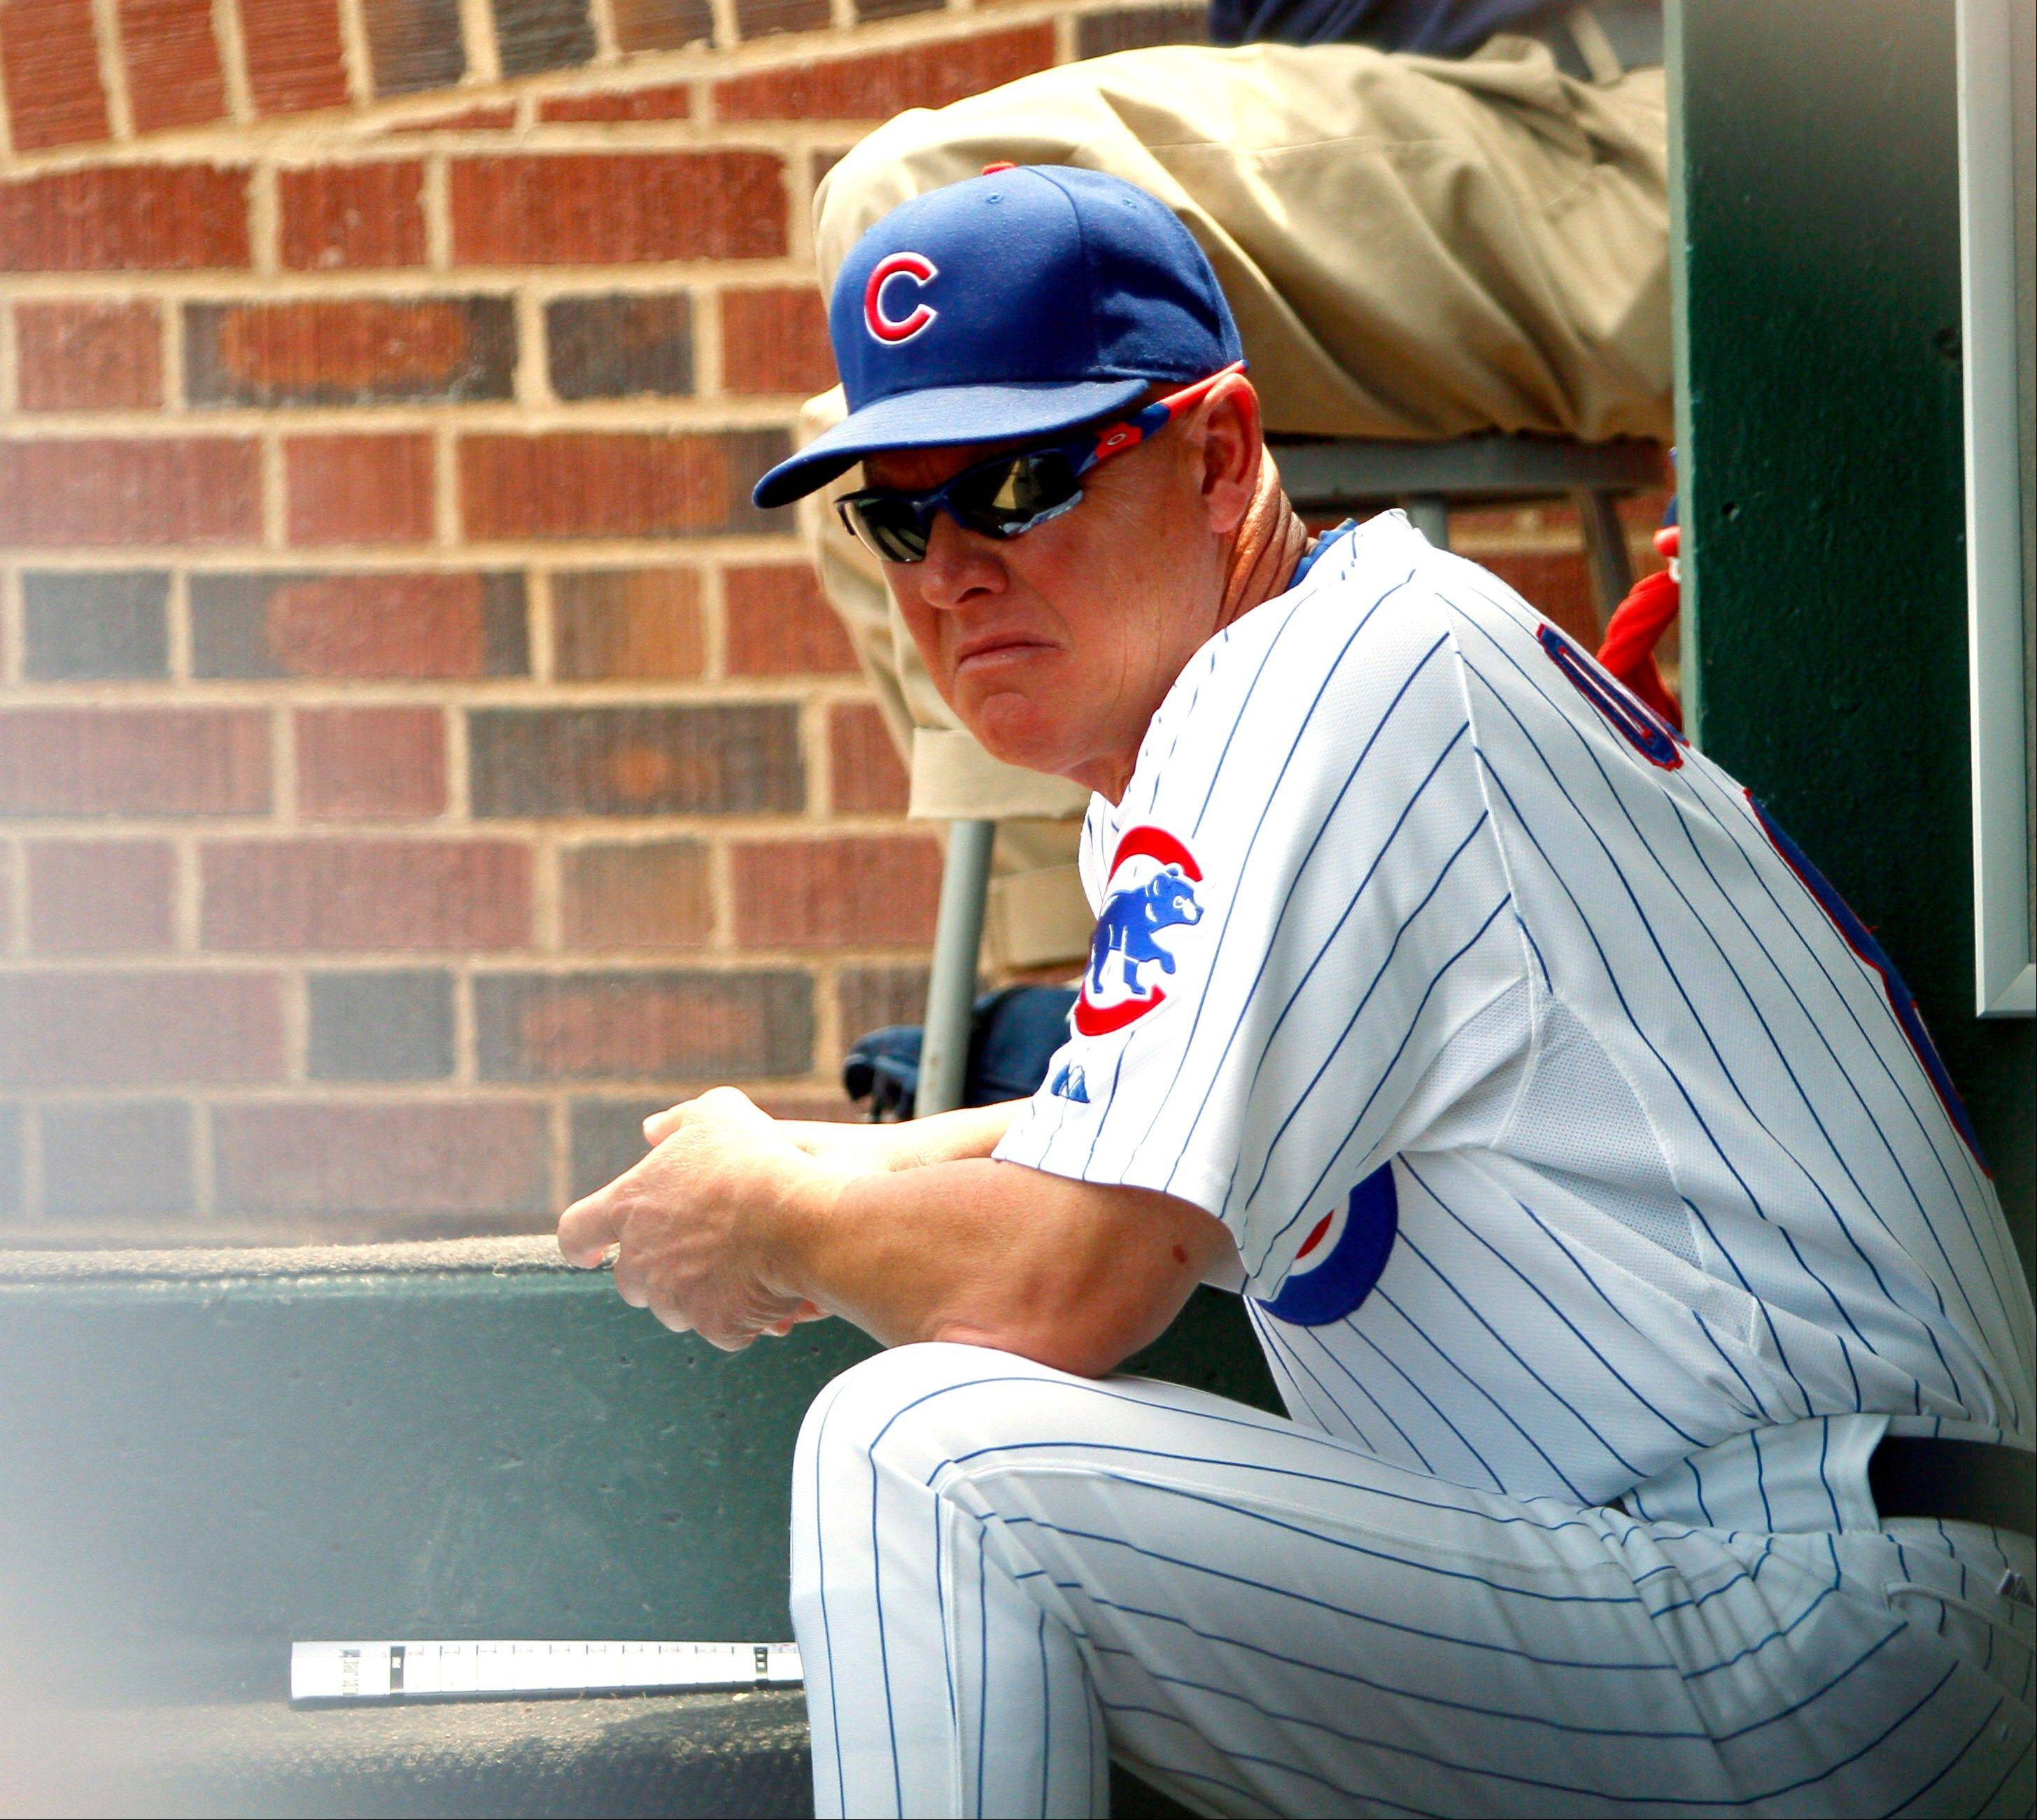 Chicago Cubs' manager Mike Quade reacts after a 7-5 loss to the Florida Marlins in a baseball game, Sunday, July 17, 2011, in Chicago.